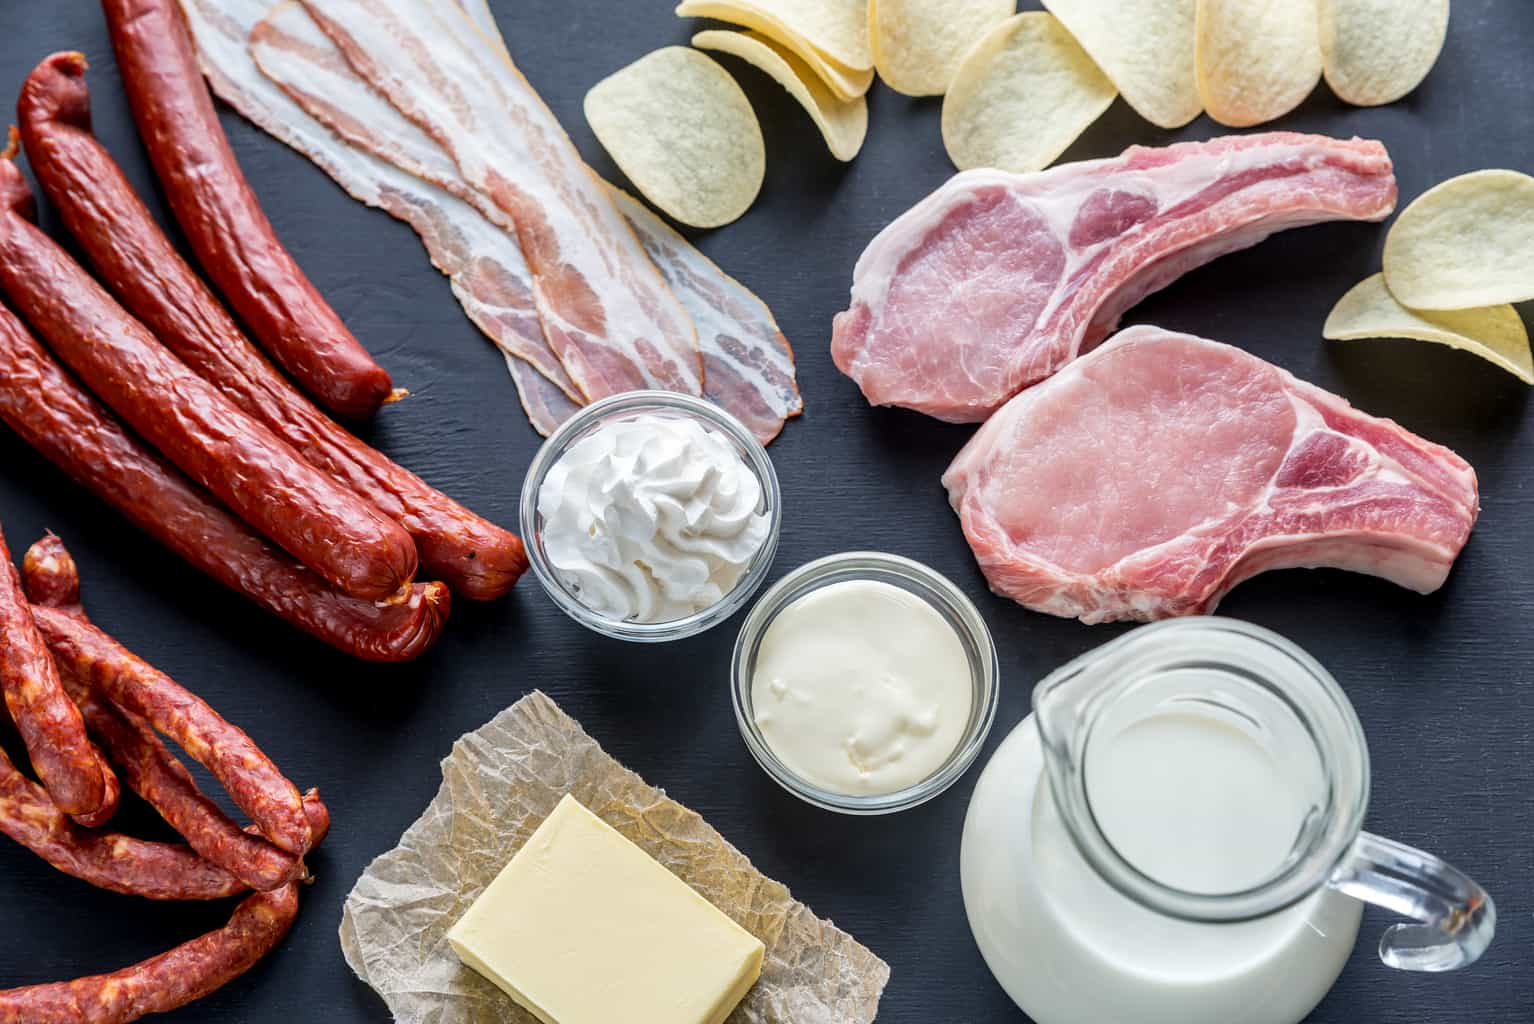 Keto High Saturated Fat Foods and Keto Benefits